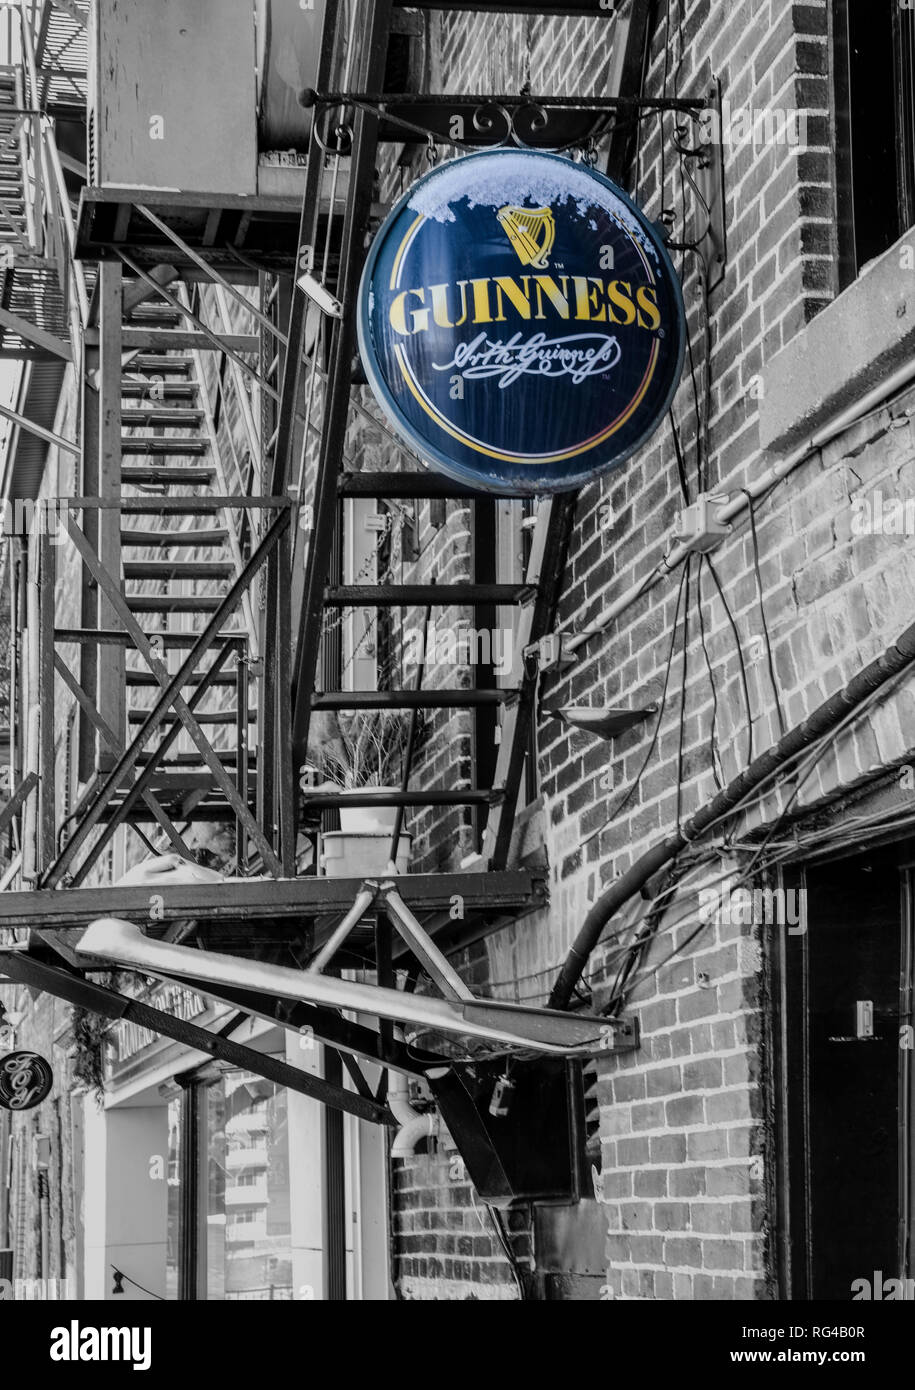 A Guinness signboard viewed in Stratford, Ontario. - Stock Image